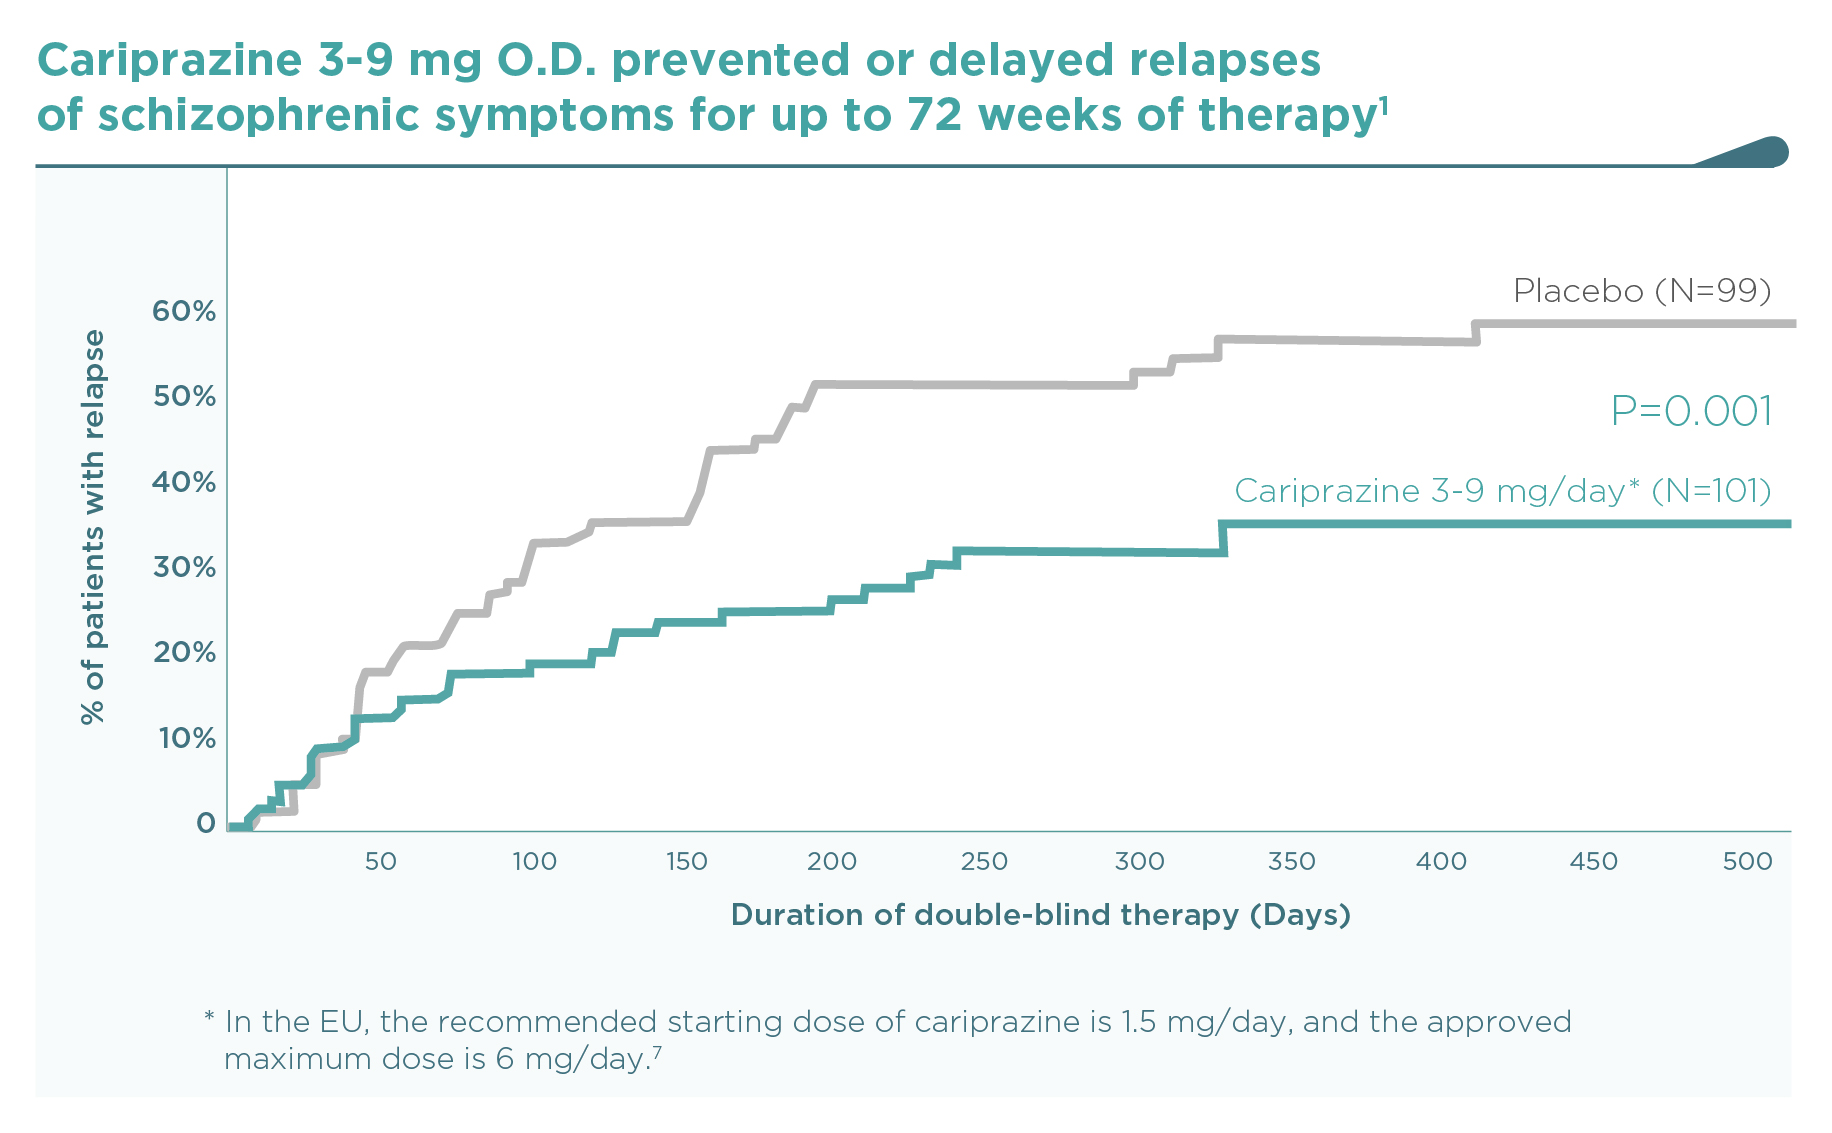 Cariprazine maintenance study: Kaplan-Meier curve of relapse rates for cariprazine vs placebo